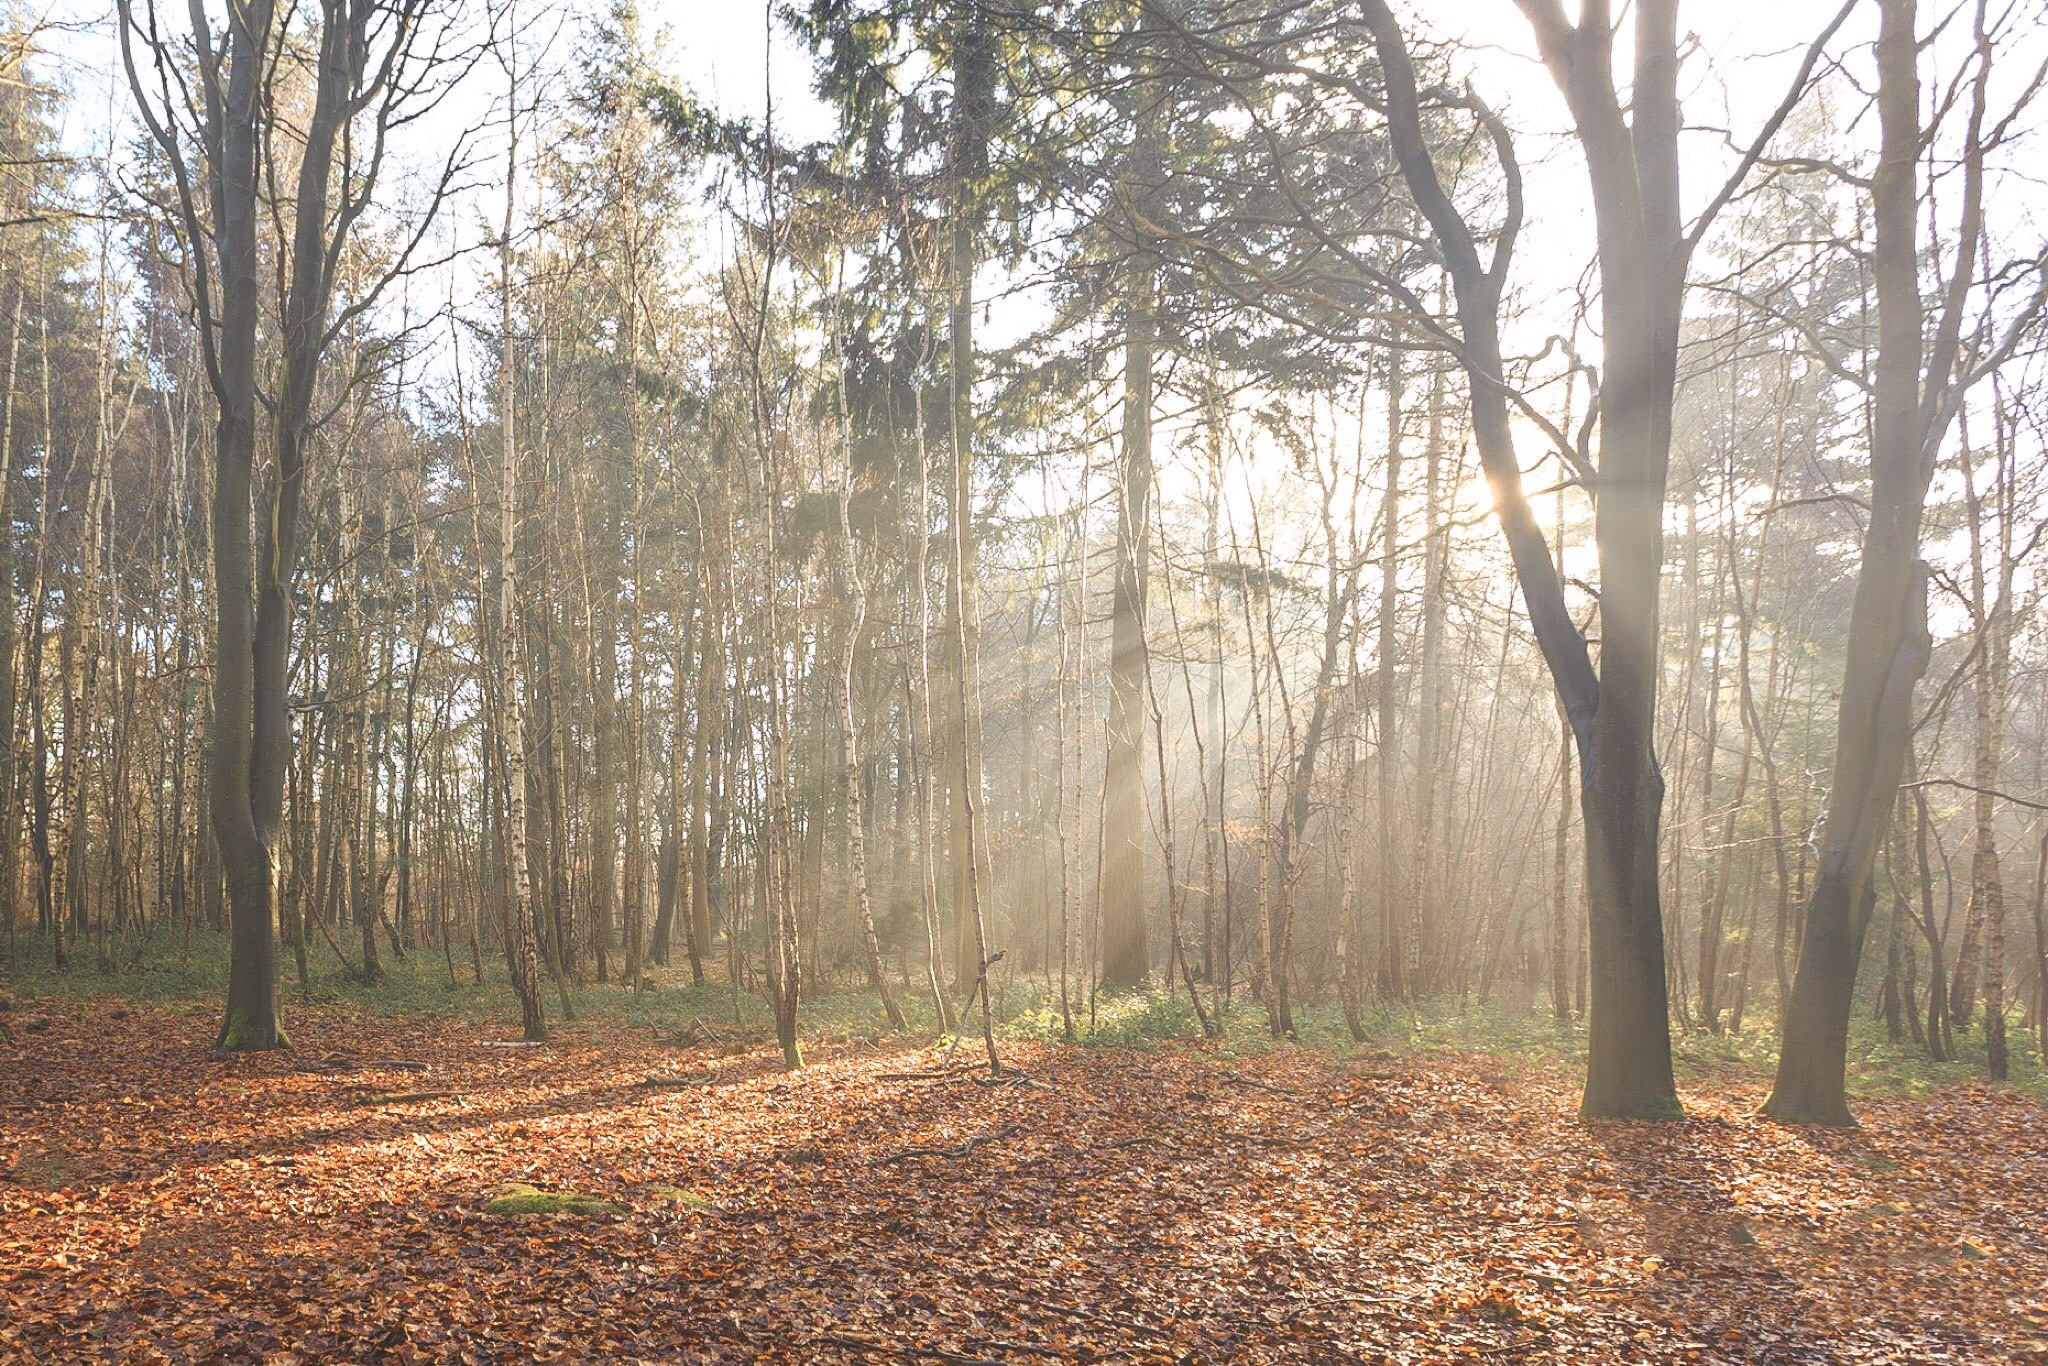 Misty sunshine at The Vyne by Rick McEvoy Photographer in Hampshire